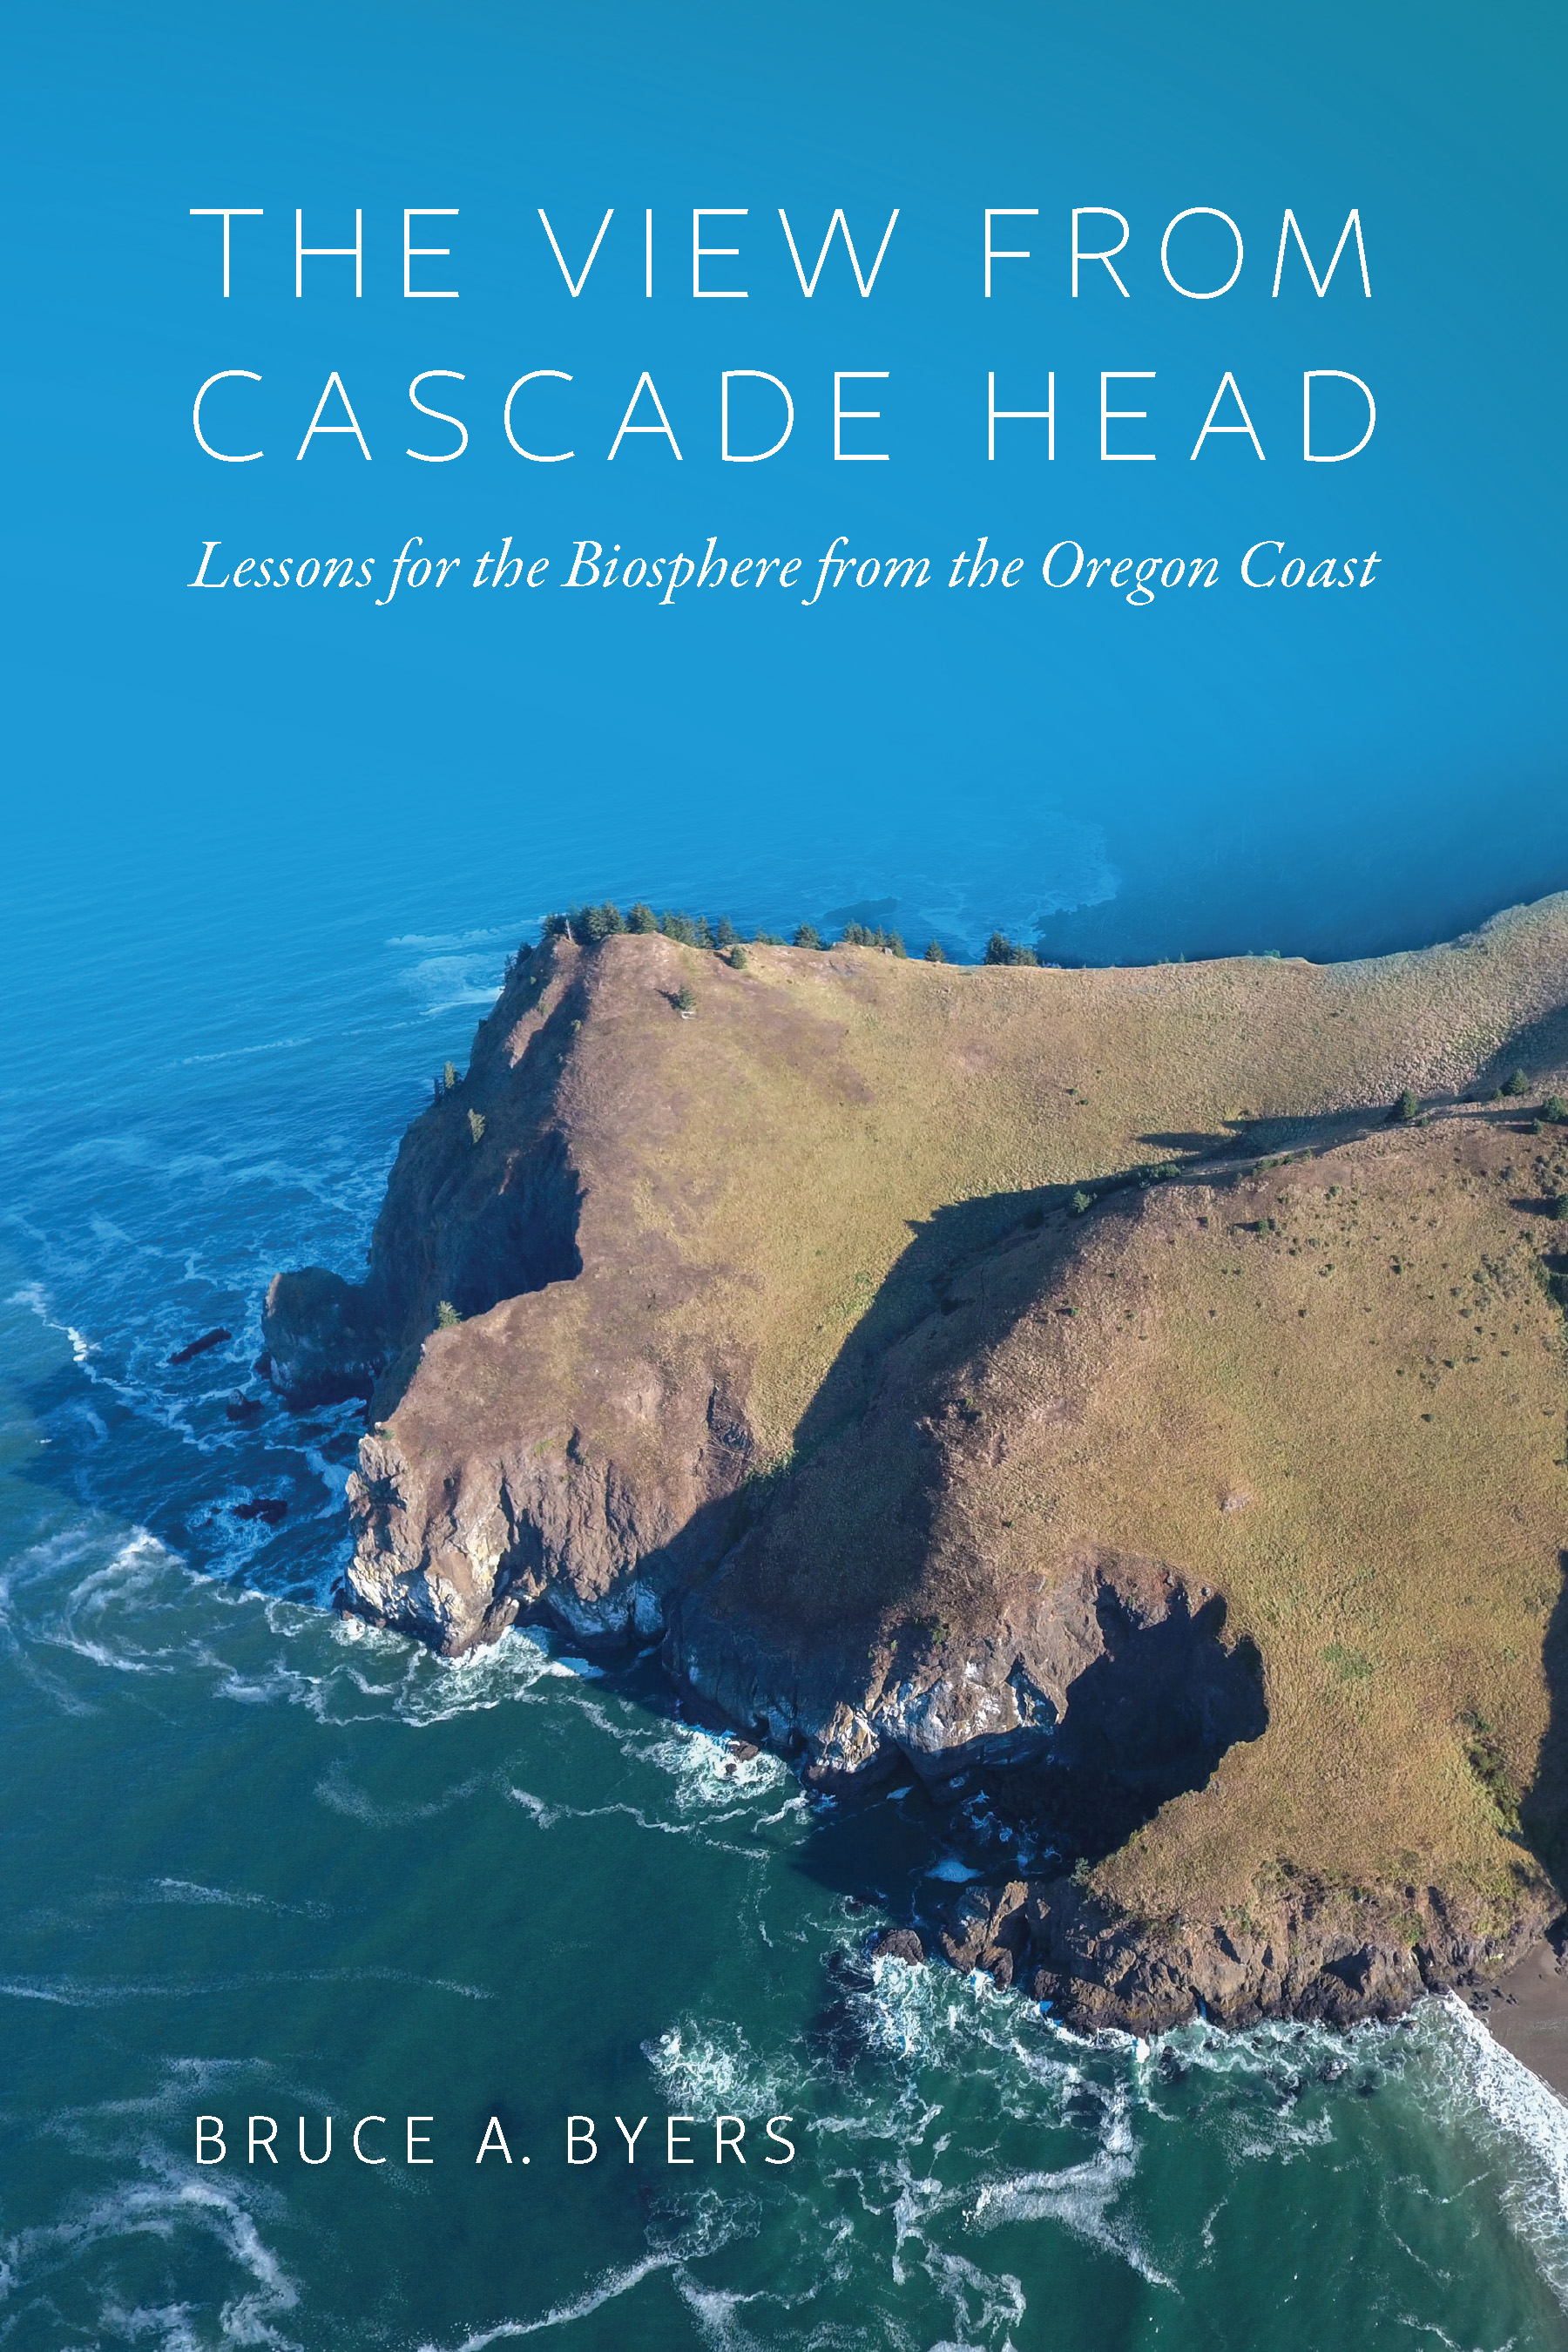 The View from Cascade Head